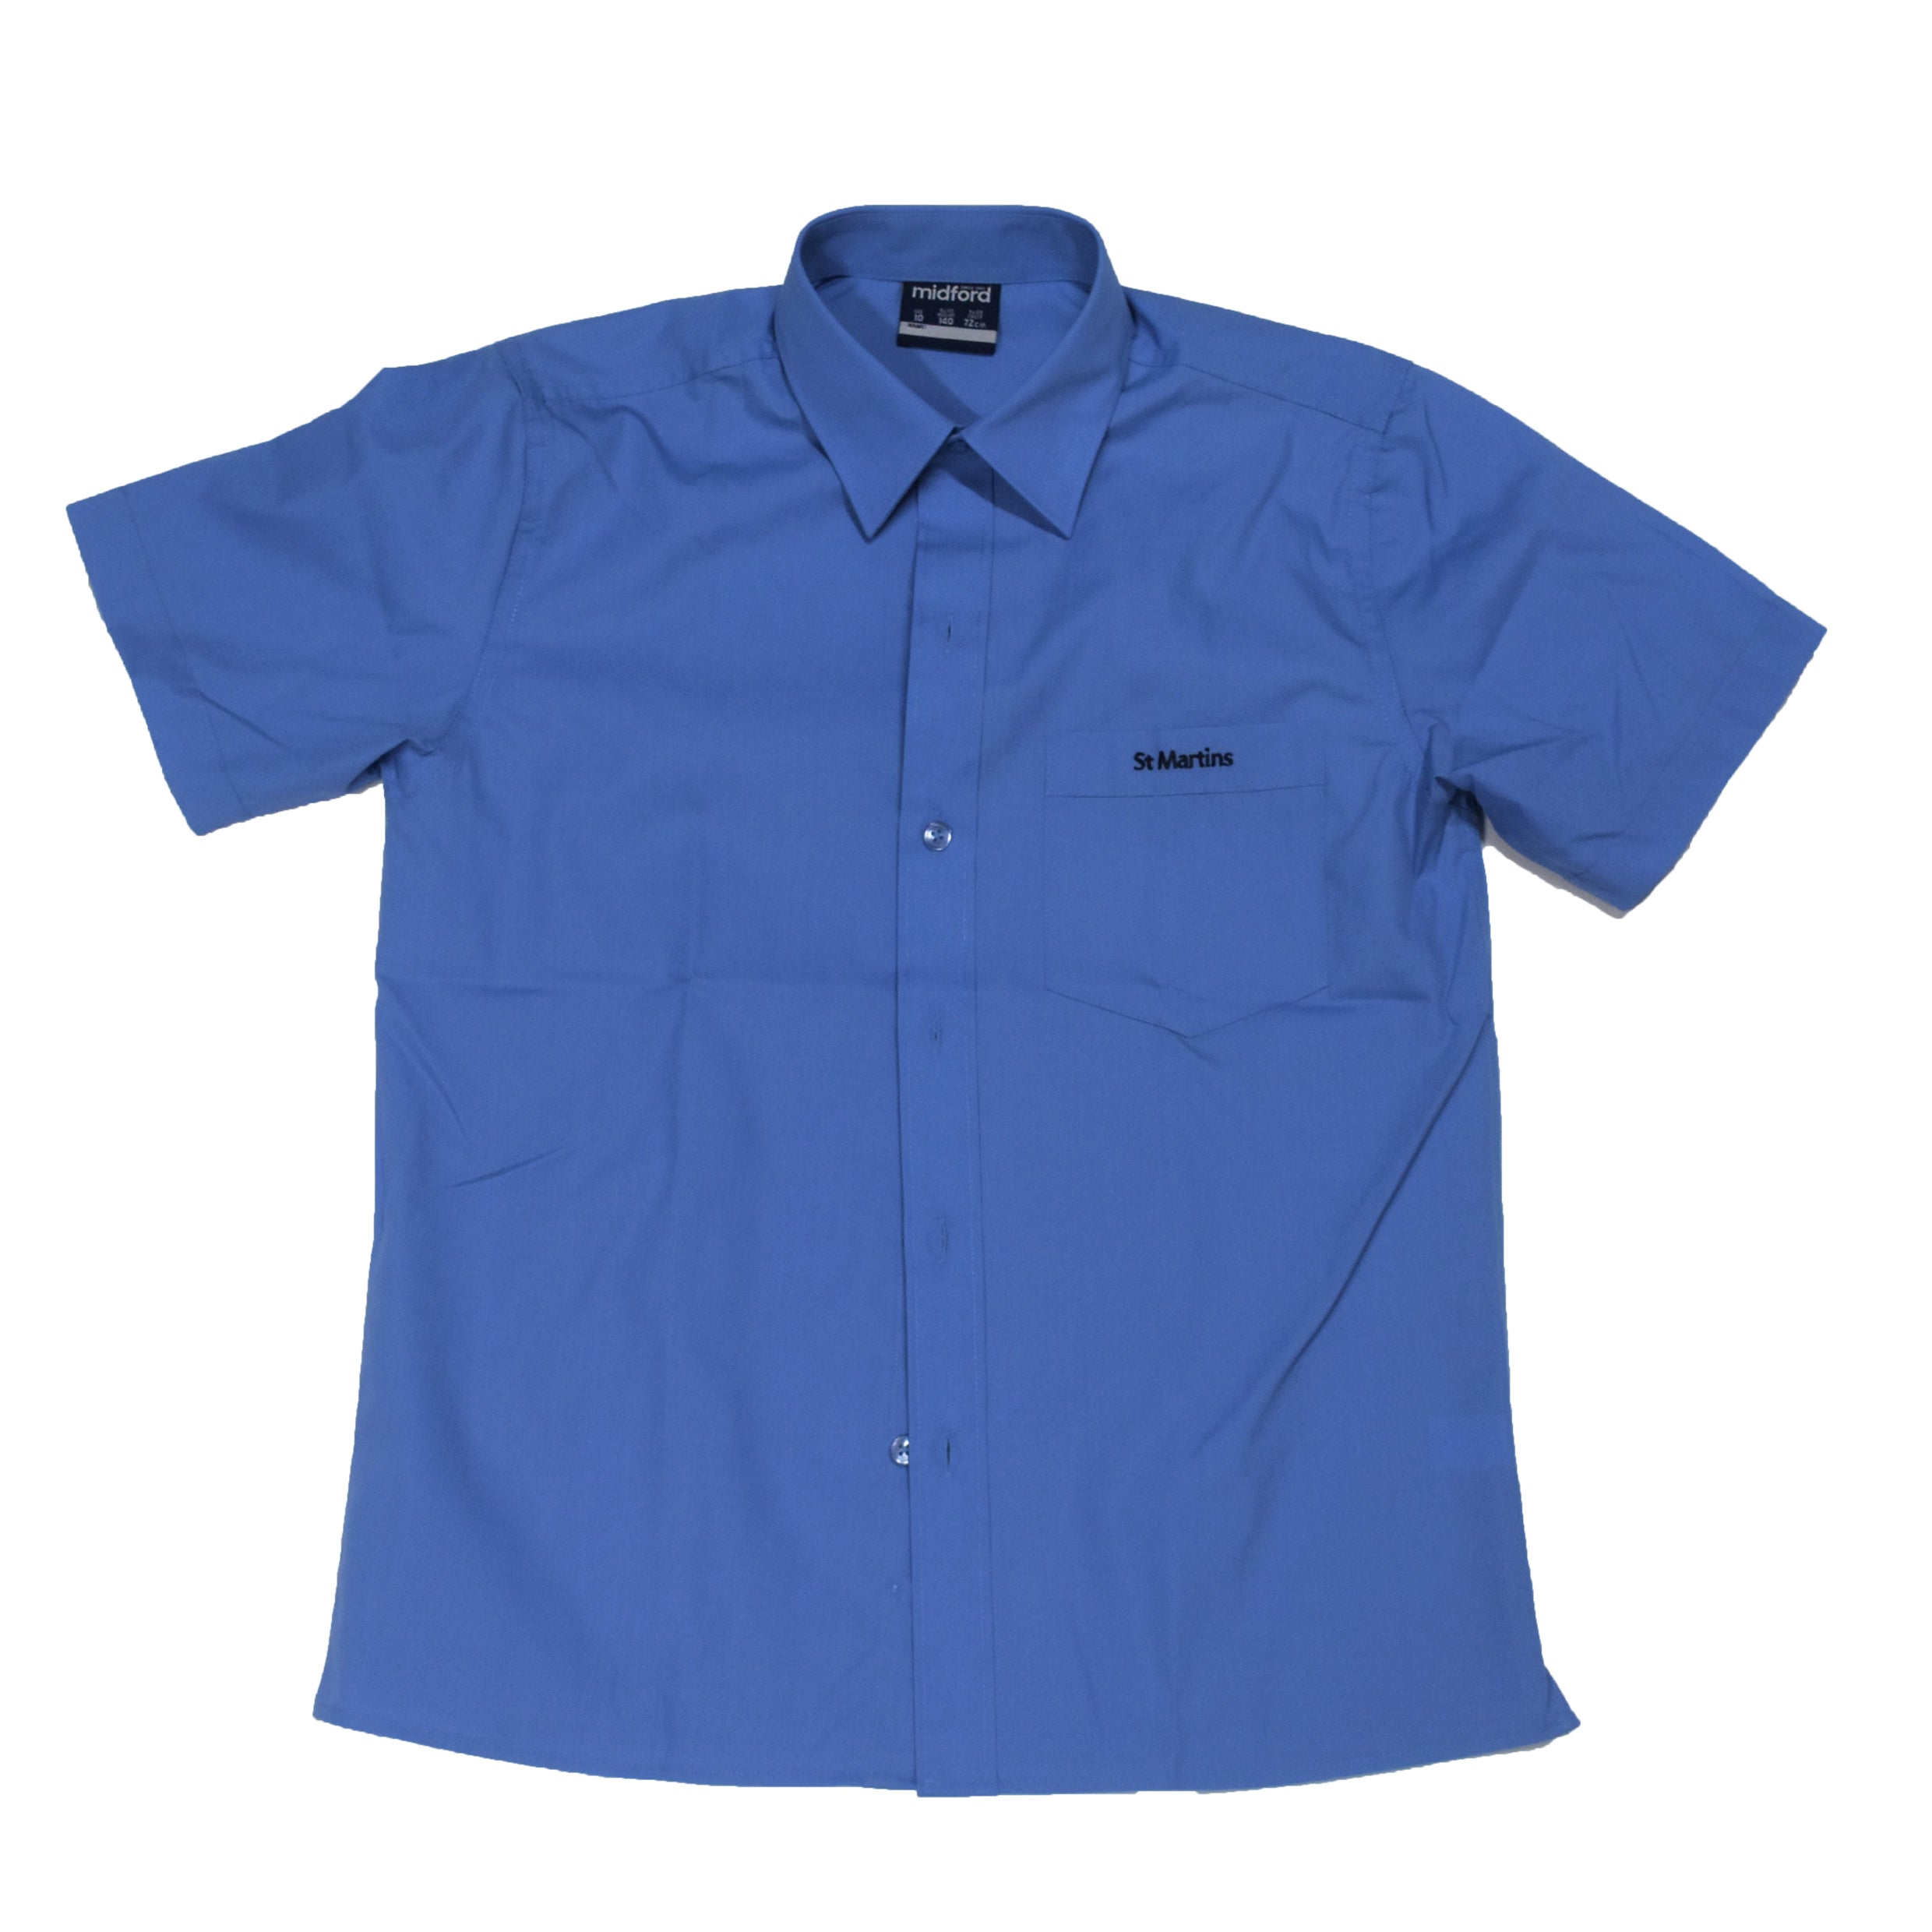 Primary Shirt (Short Sleeve)